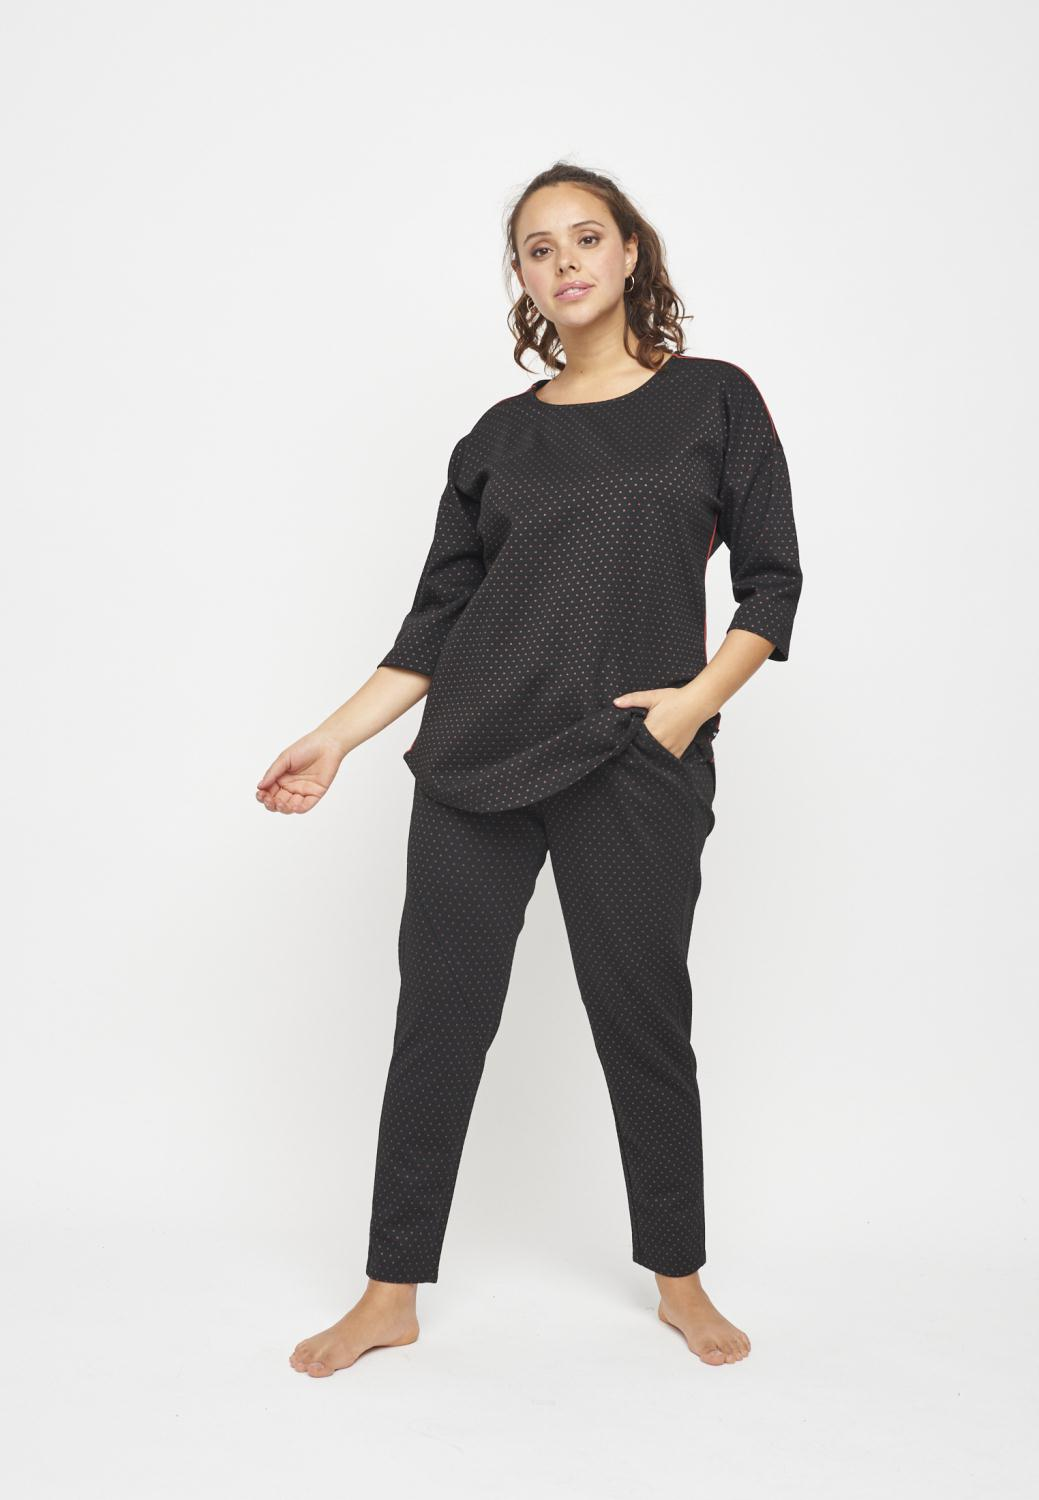 gallery-6638-for-AD4003